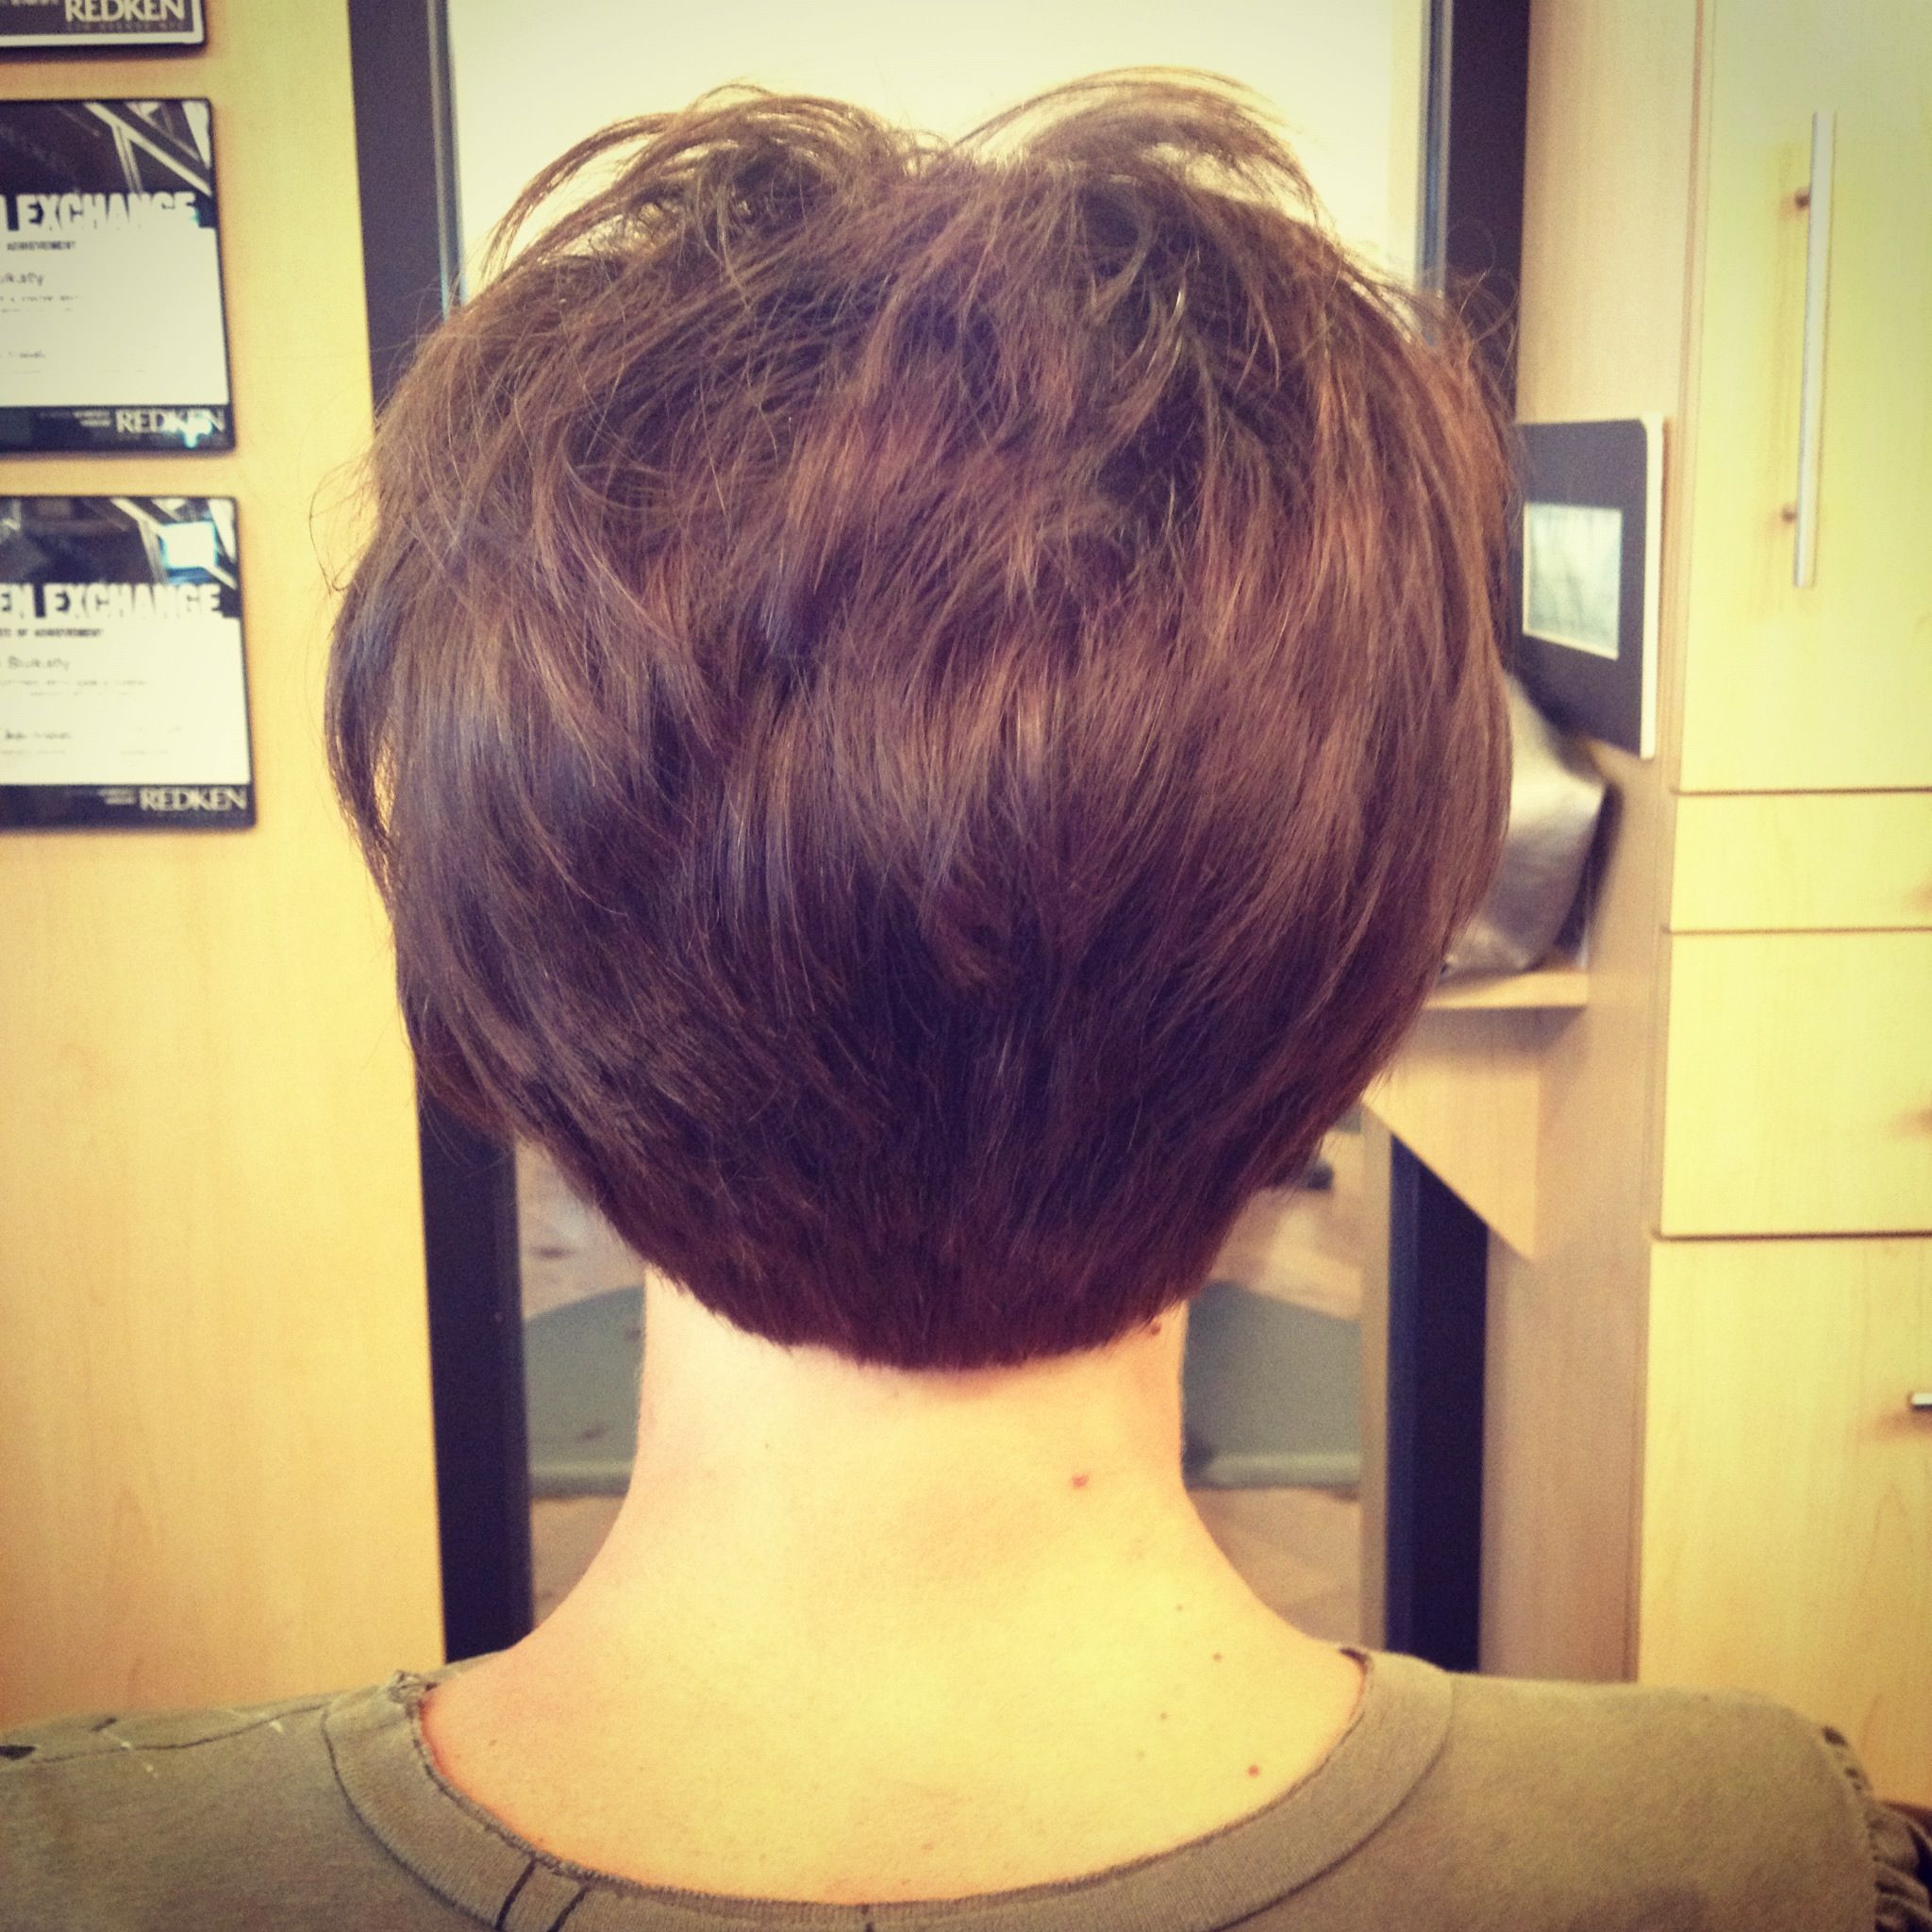 Salon Cut In Short Stacked Bob Haircut By Debbie At Encounters Salon